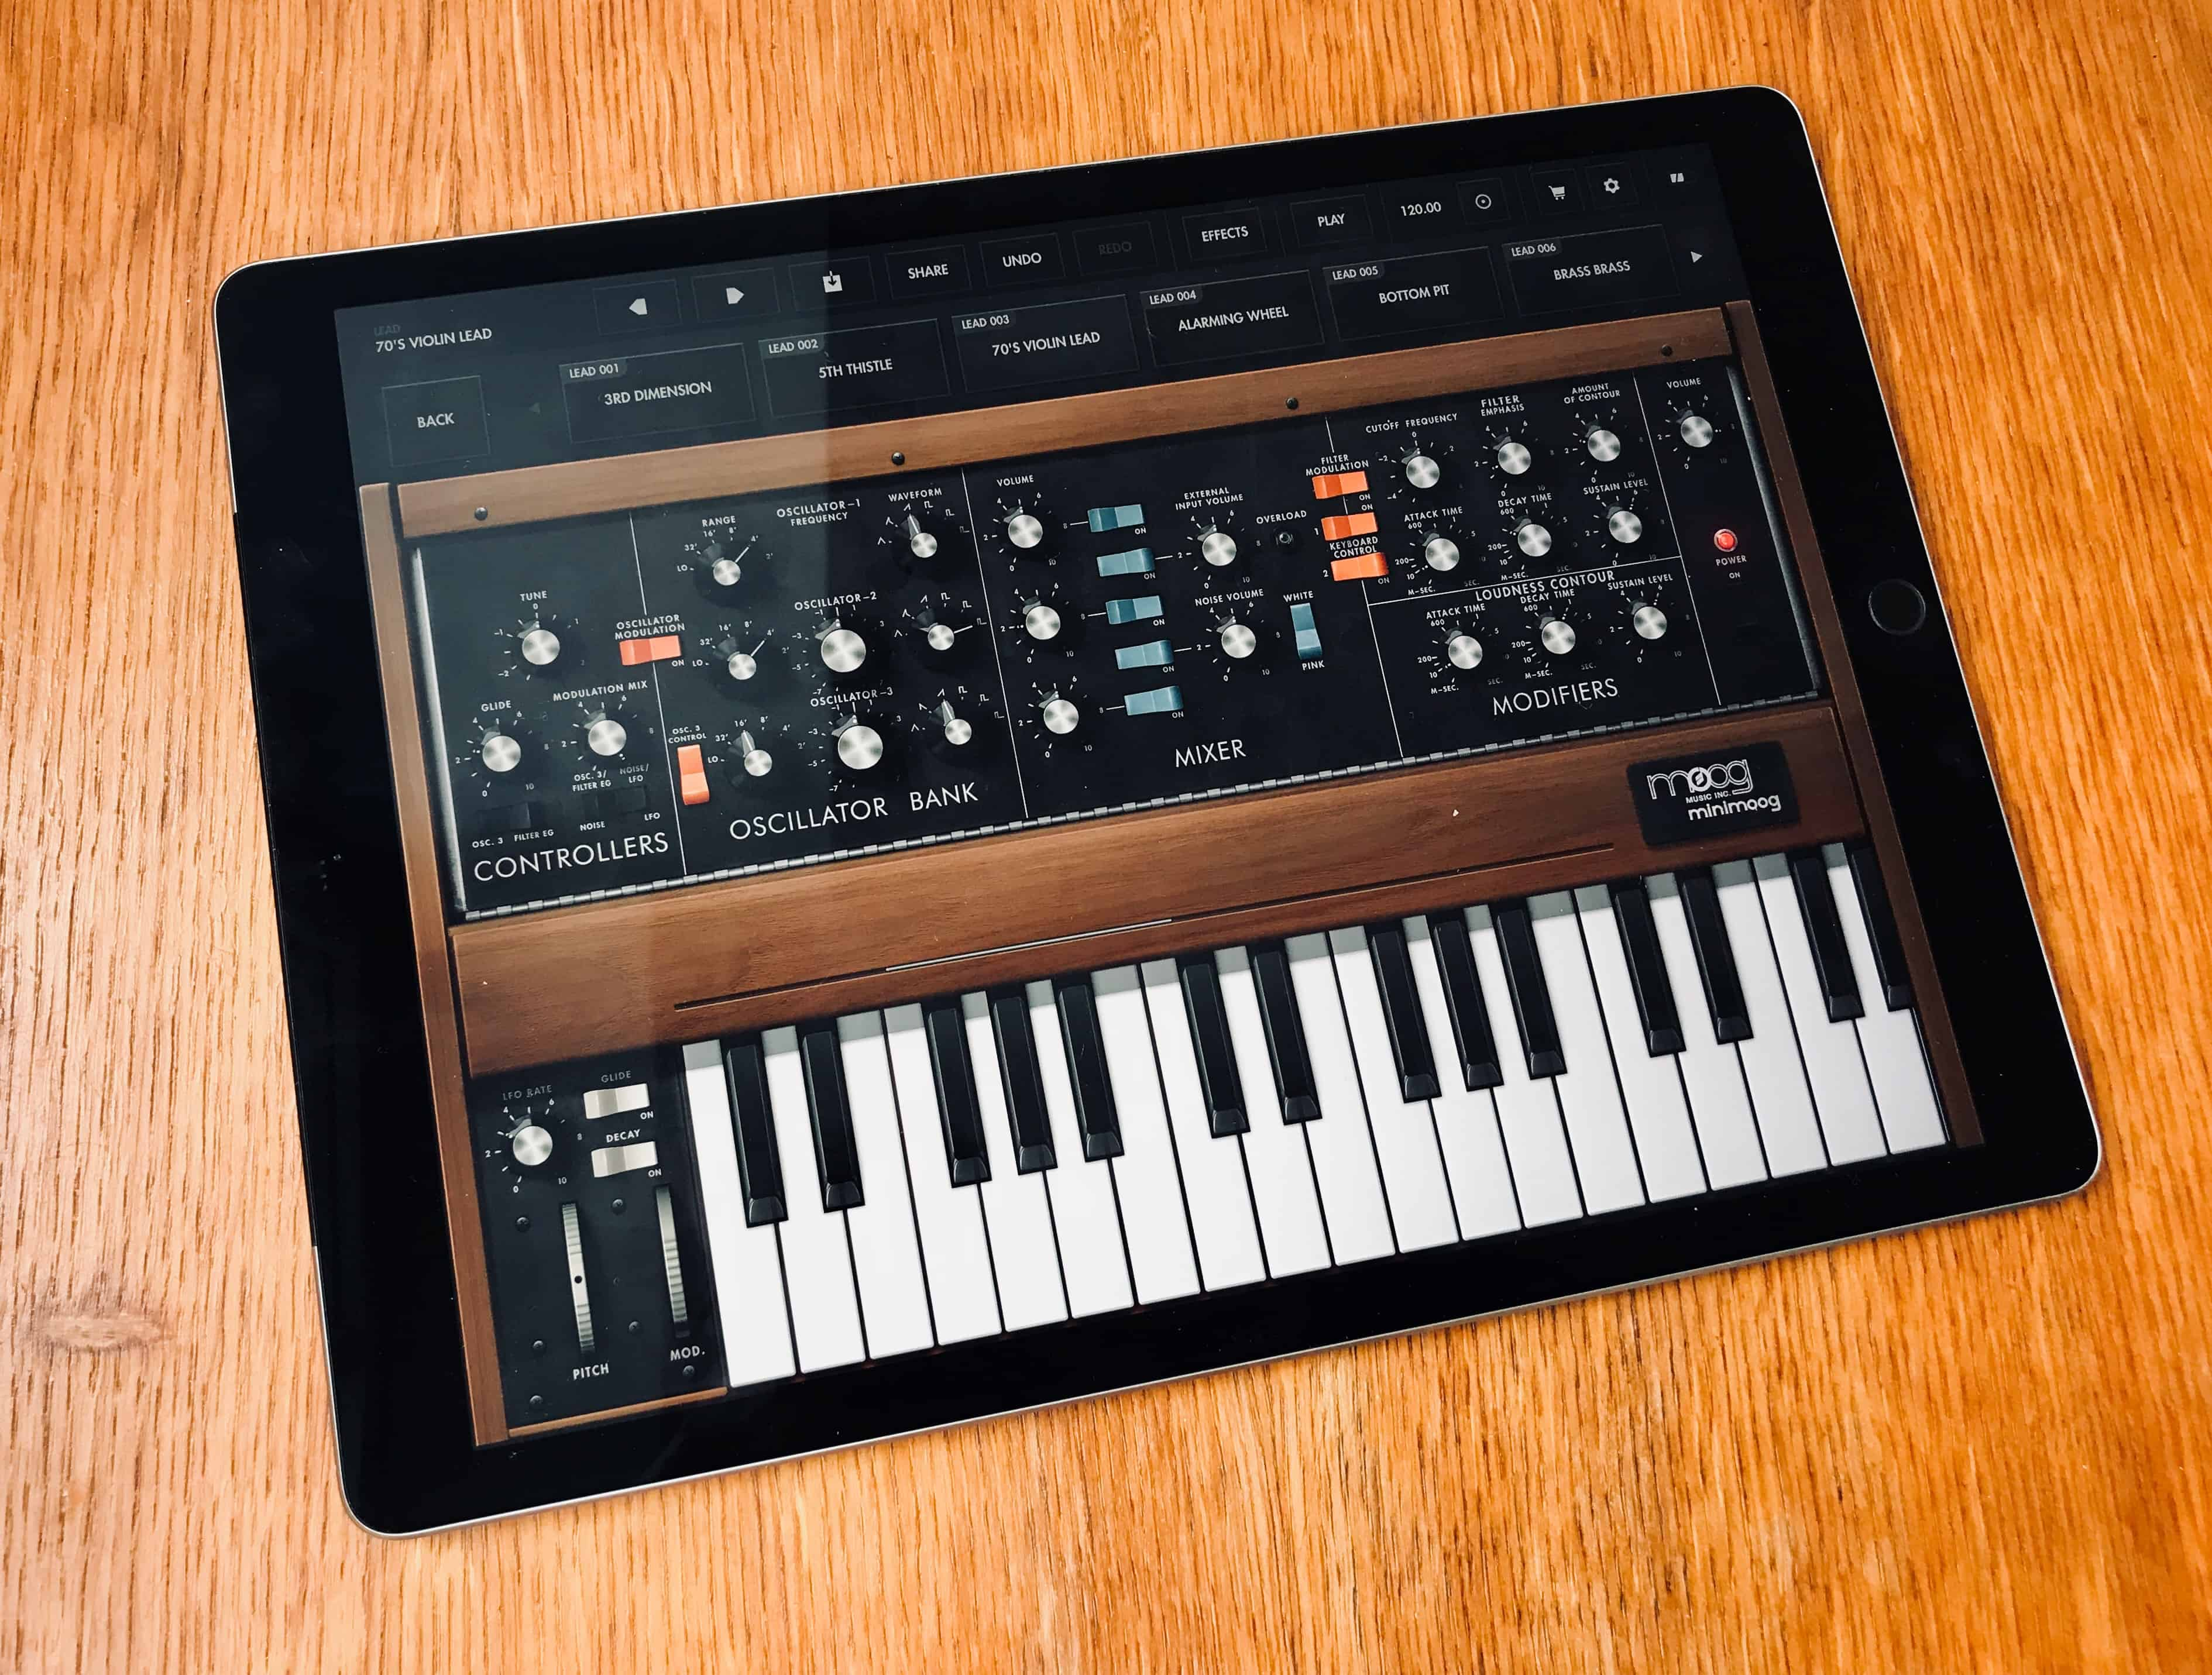 moog brings world 39 s first portable synth to ipad cult of mac. Black Bedroom Furniture Sets. Home Design Ideas